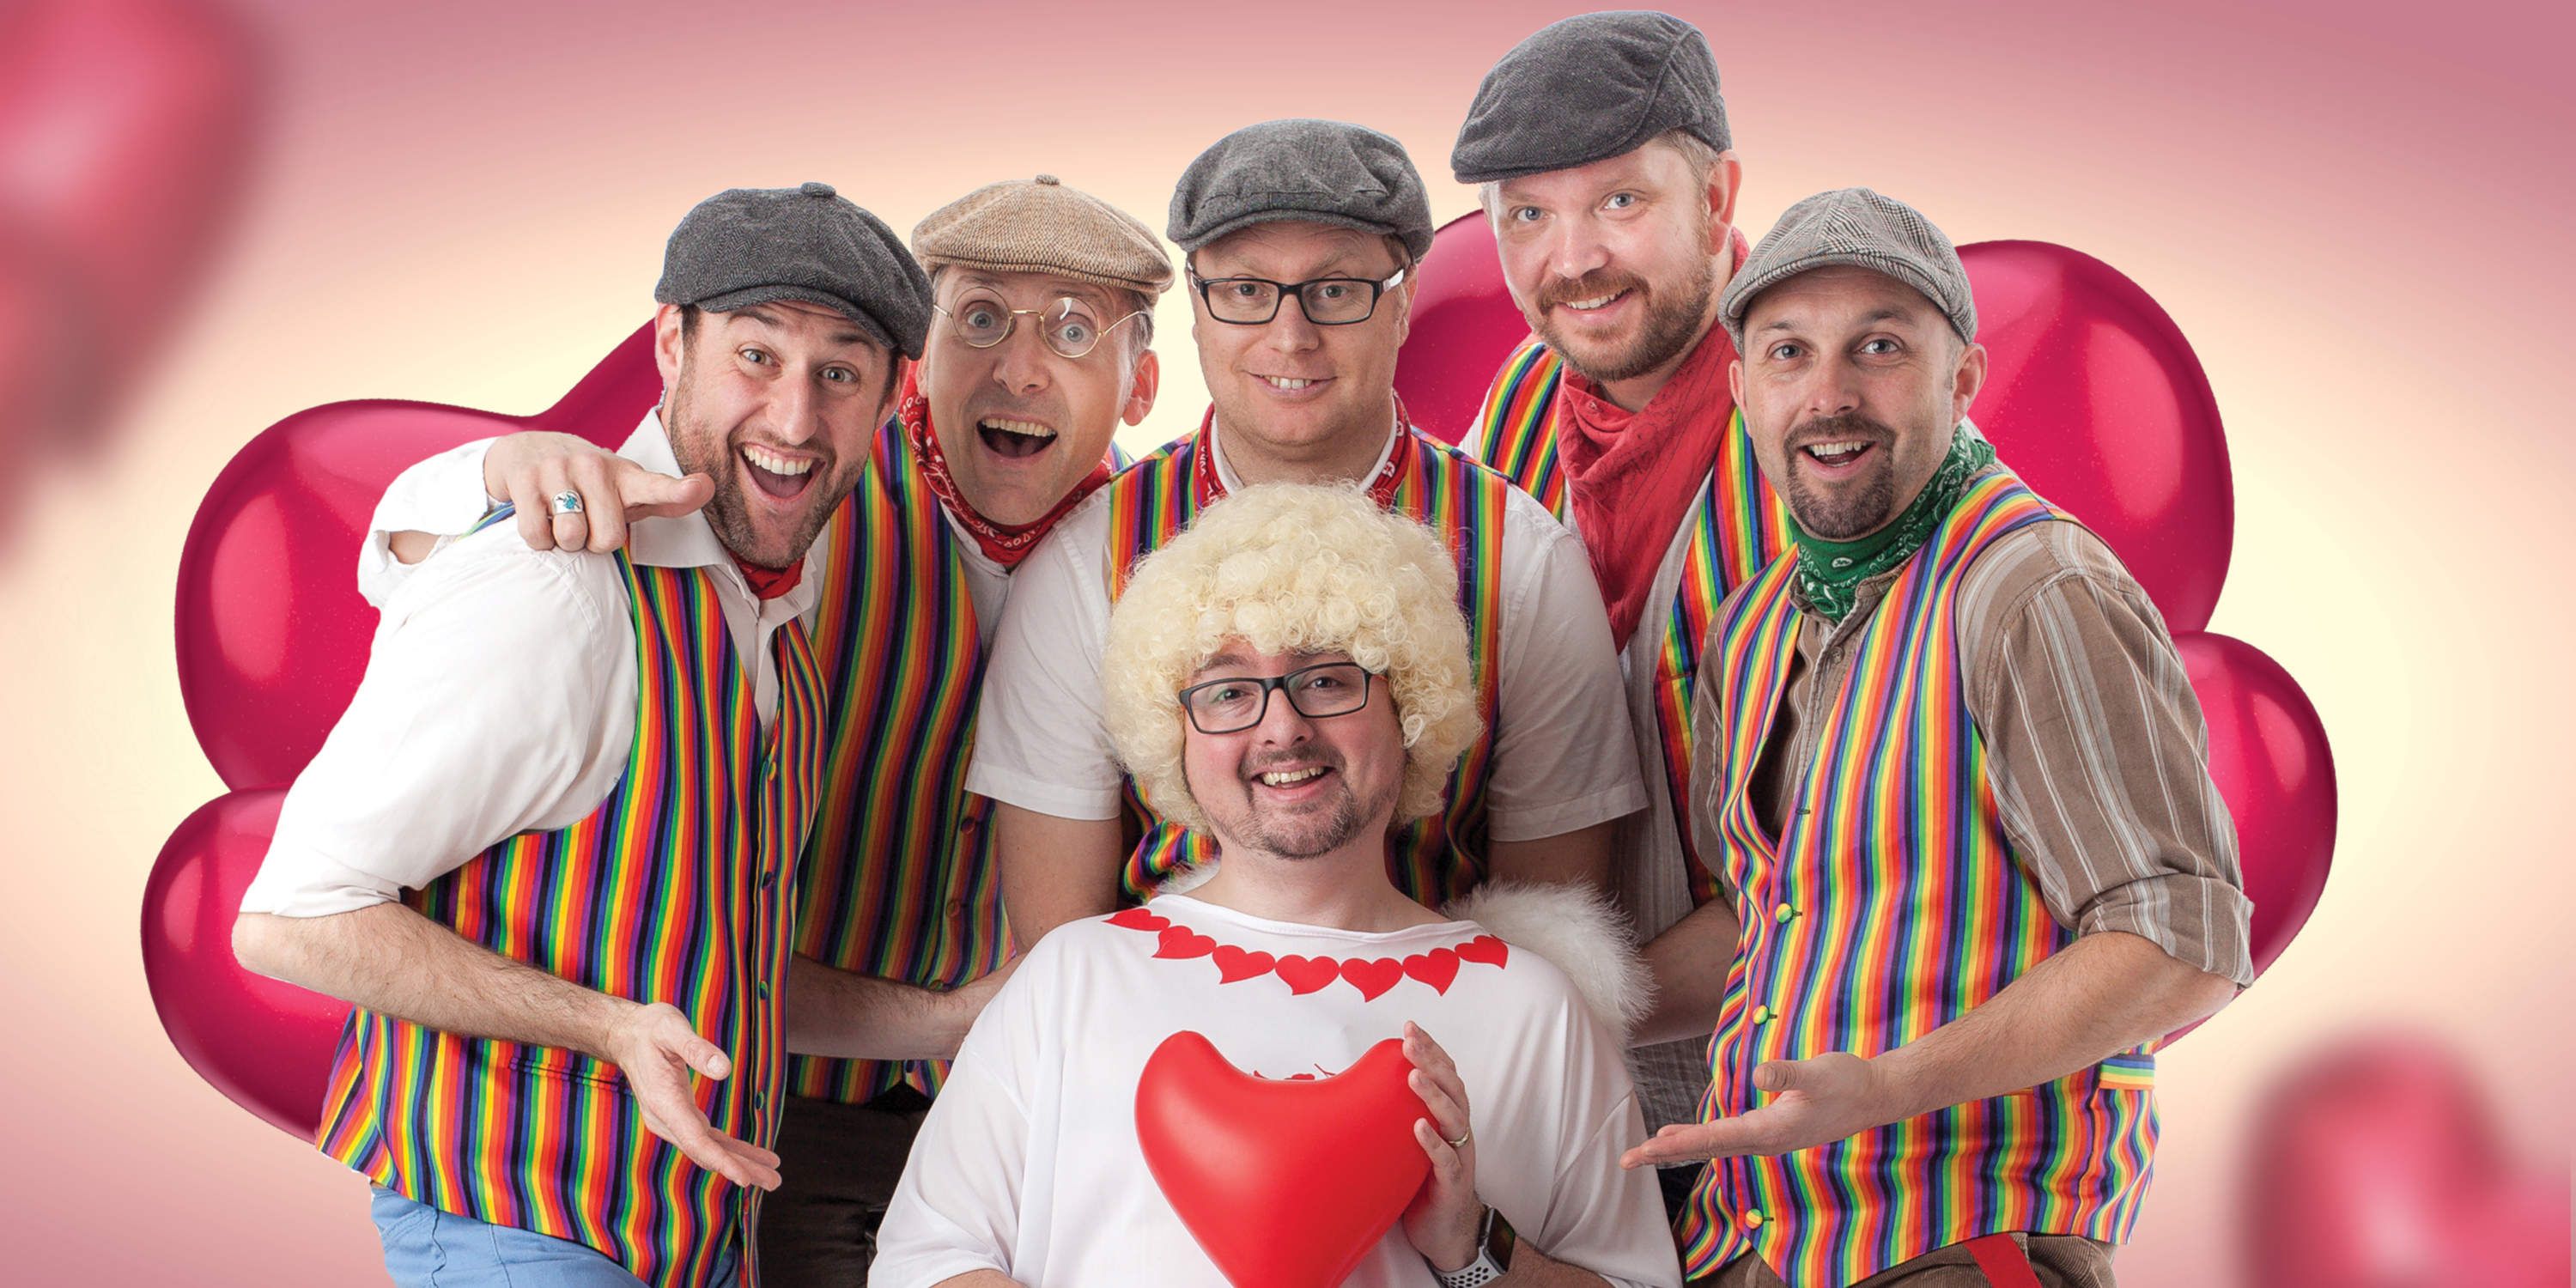 The Lancashire Hotpots Love Tour promotion